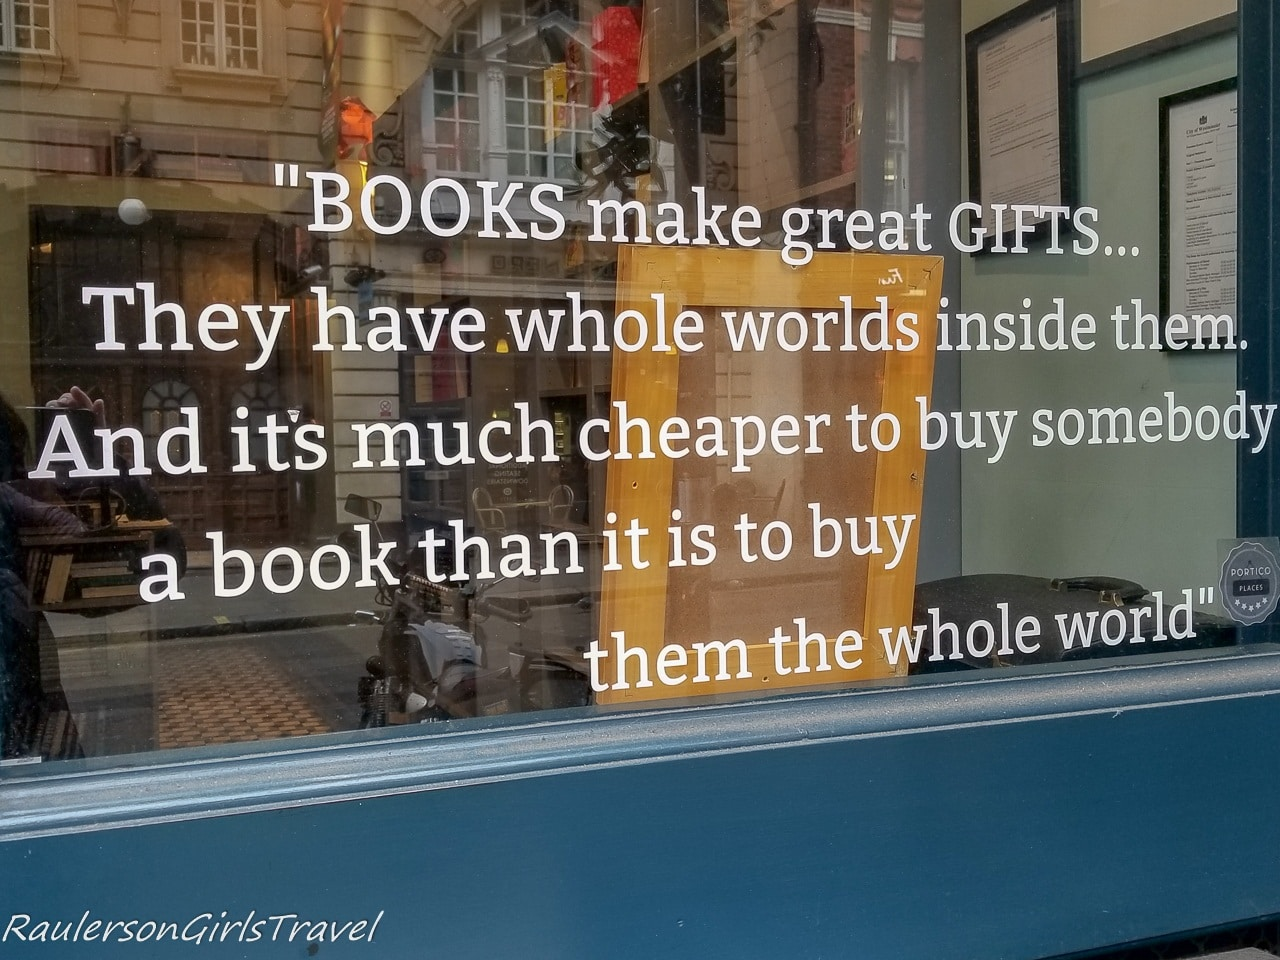 Booksellers Alley book quote